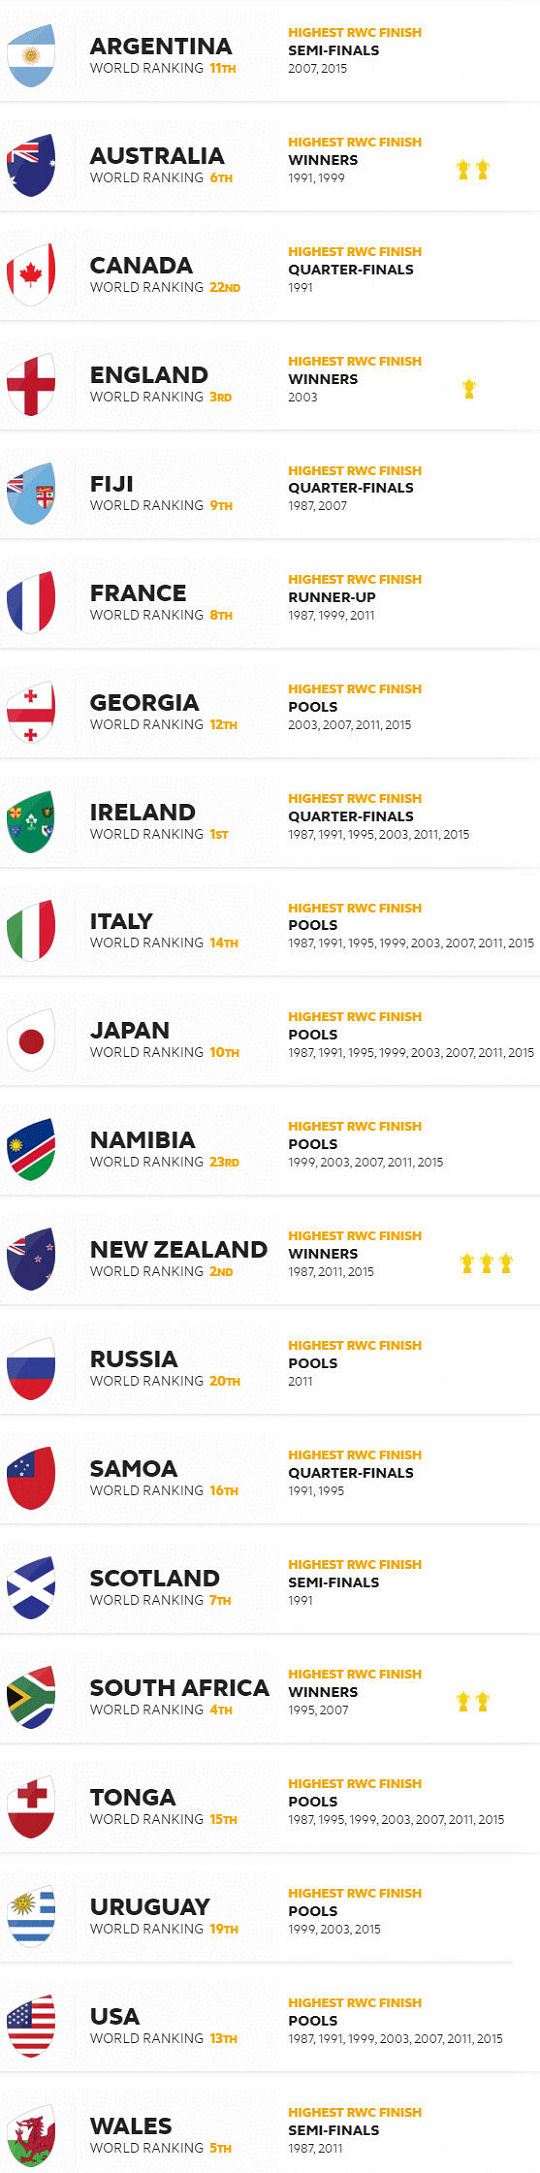 RWC 2019 Teams